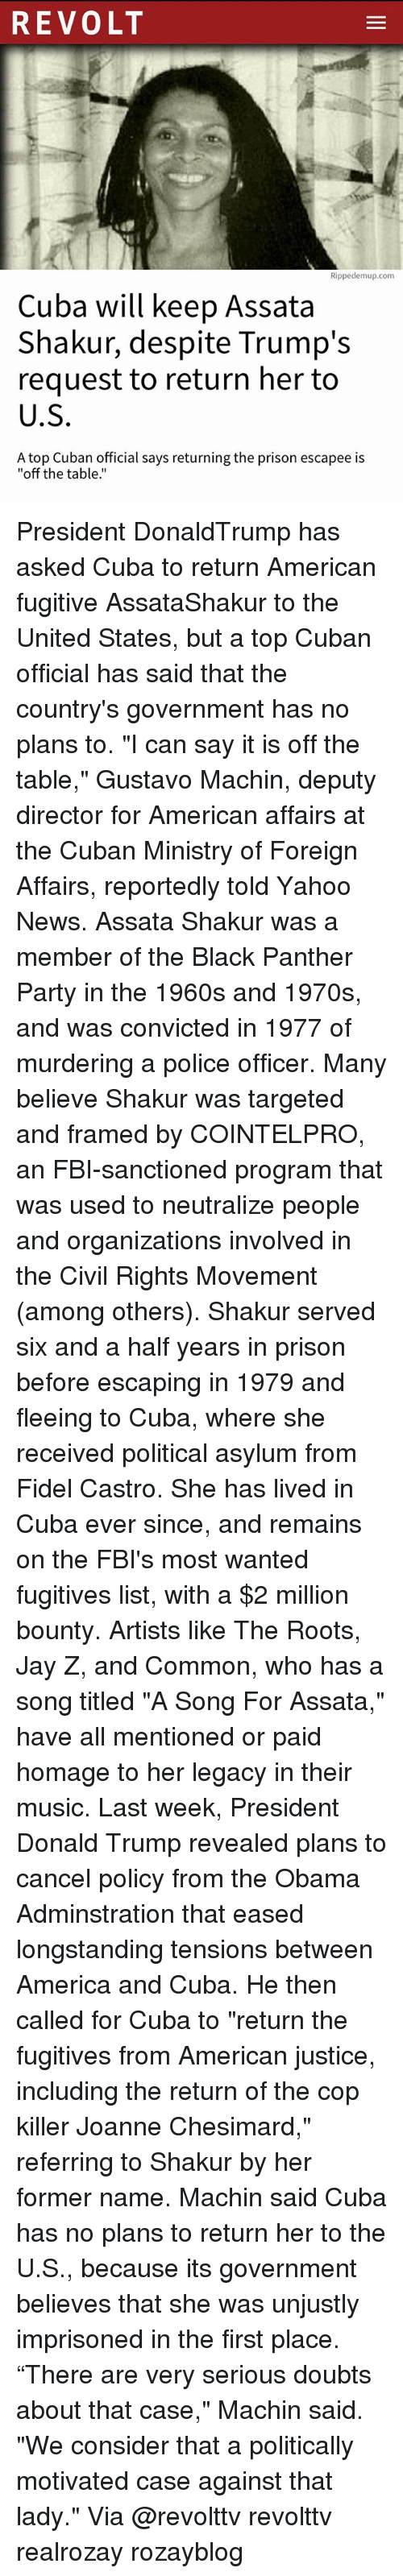 """the roots: REVOLT  Rippedemup.com  Cuba will keep Assata  Shakur, despite Trump's  request to return her to  U.S  A top Cuban official says returning the prison escapee is  """"off the table.' President DonaldTrump has asked Cuba to return American fugitive AssataShakur to the United States, but a top Cuban official has said that the country's government has no plans to. """"I can say it is off the table,"""" Gustavo Machin, deputy director for American affairs at the Cuban Ministry of Foreign Affairs, reportedly told Yahoo News. Assata Shakur was a member of the Black Panther Party in the 1960s and 1970s, and was convicted in 1977 of murdering a police officer. Many believe Shakur was targeted and framed by COINTELPRO, an FBI-sanctioned program that was used to neutralize people and organizations involved in the Civil Rights Movement (among others). Shakur served six and a half years in prison before escaping in 1979 and fleeing to Cuba, where she received political asylum from Fidel Castro. She has lived in Cuba ever since, and remains on the FBI's most wanted fugitives list, with a $2 million bounty. Artists like The Roots, Jay Z, and Common, who has a song titled """"A Song For Assata,"""" have all mentioned or paid homage to her legacy in their music. Last week, President Donald Trump revealed plans to cancel policy from the Obama Adminstration that eased longstanding tensions between America and Cuba. He then called for Cuba to """"return the fugitives from American justice, including the return of the cop killer Joanne Chesimard,"""" referring to Shakur by her former name. Machin said Cuba has no plans to return her to the U.S., because its government believes that she was unjustly imprisoned in the first place. """"There are very serious doubts about that case,"""" Machin said. """"We consider that a politically motivated case against that lady."""" Via @revolttv revolttv realrozay rozayblog"""